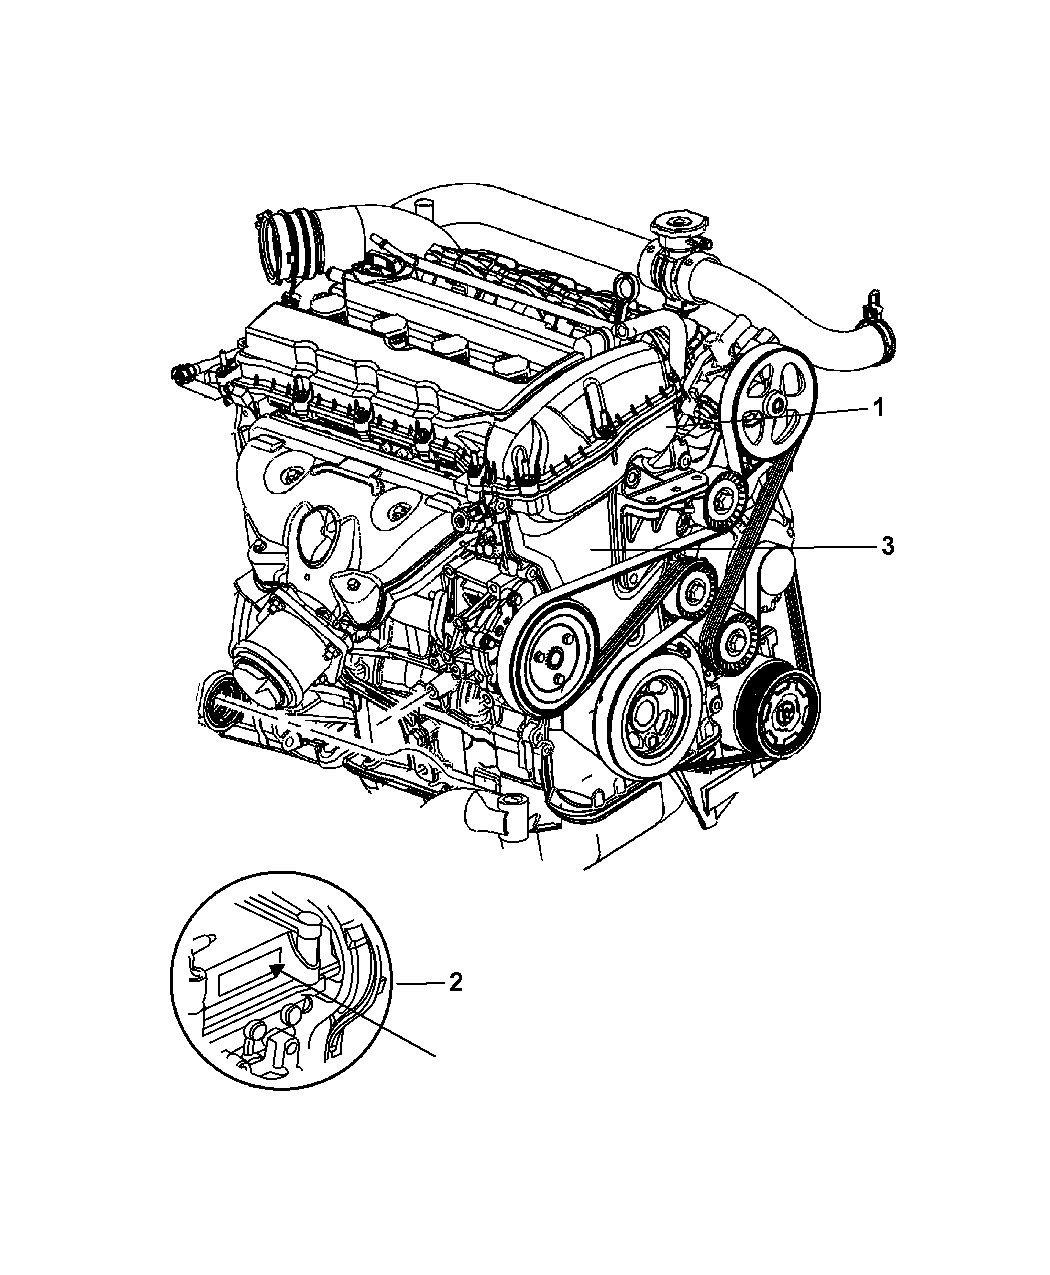 2013 Dodge Dart Engine Assembly & Service - Thumbnail 2